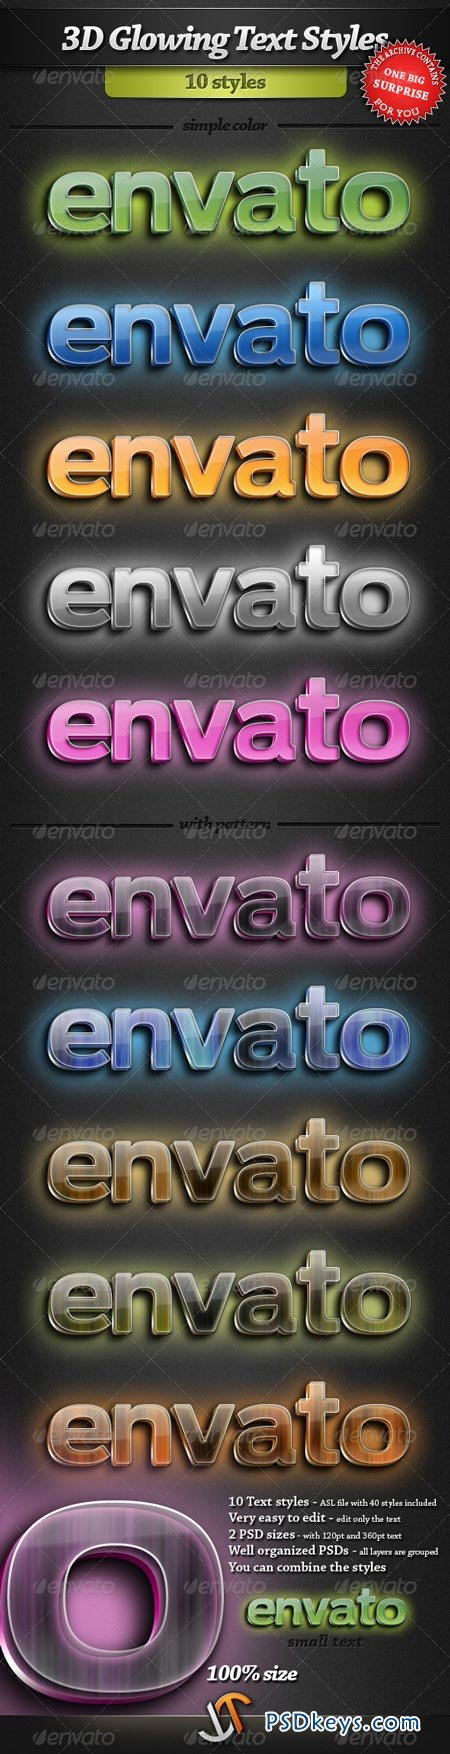 3D Glowing Text Styles 2238183